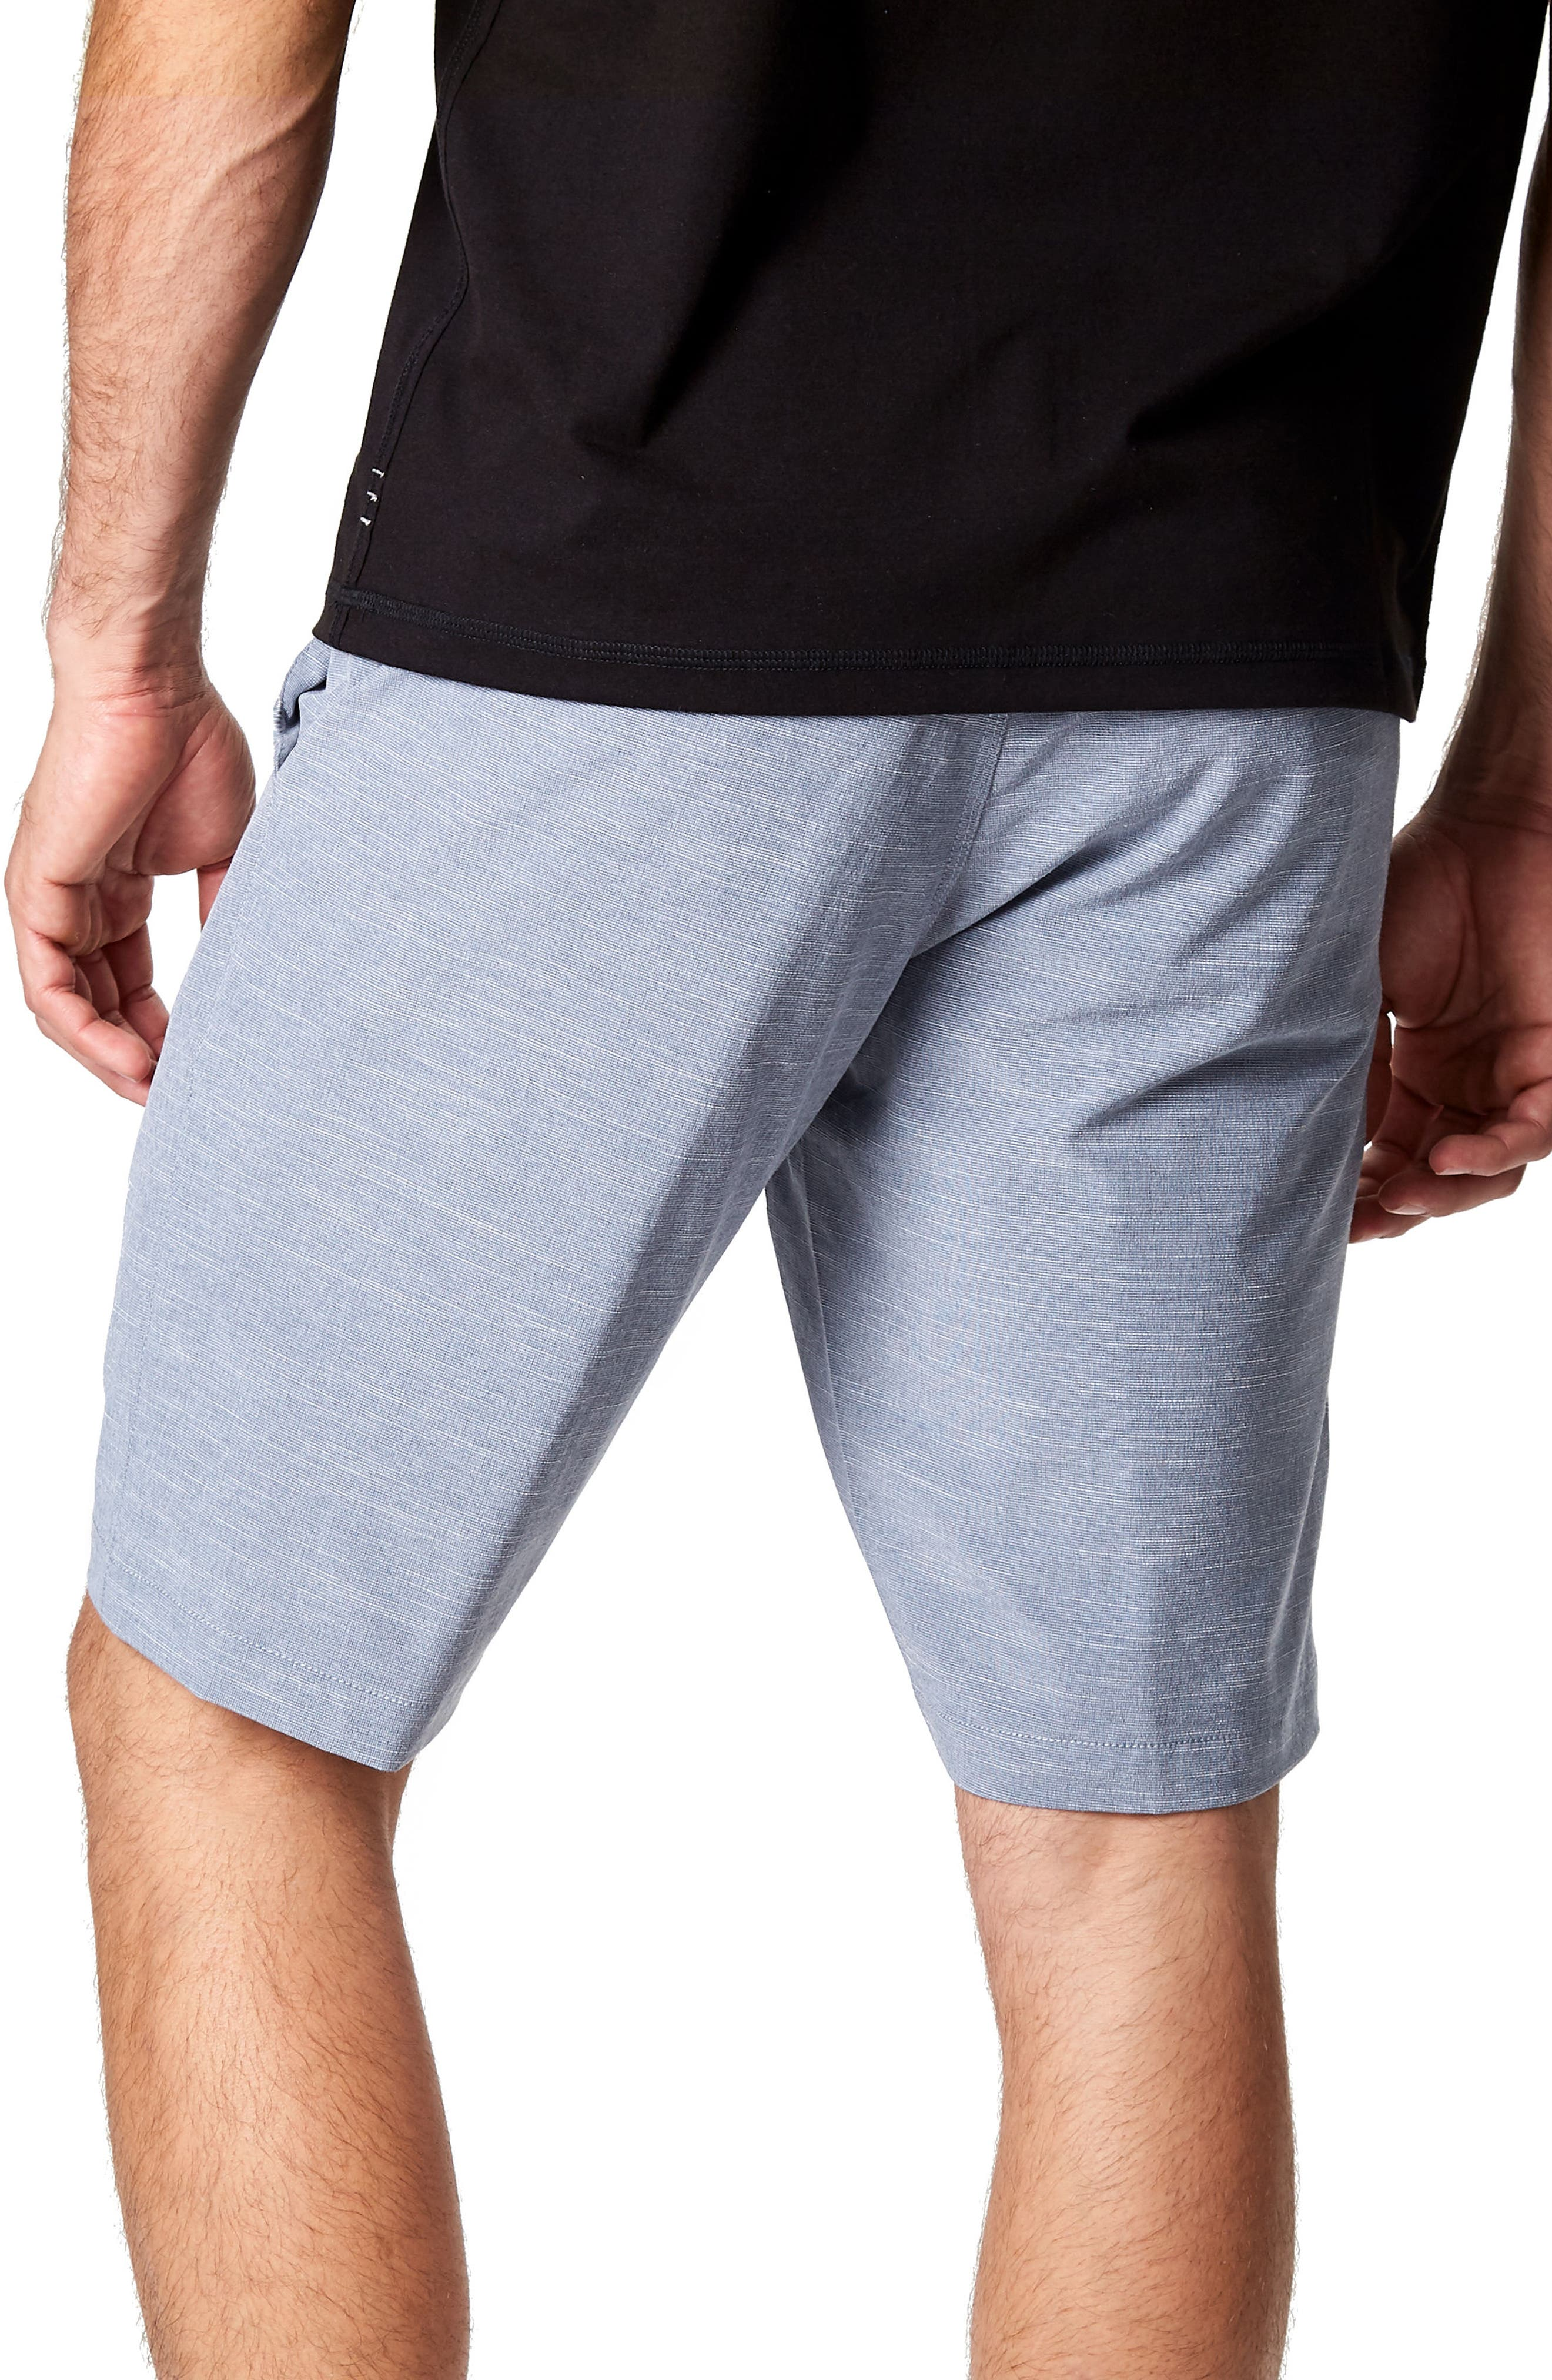 Existence Stretch Shorts,                             Alternate thumbnail 5, color,